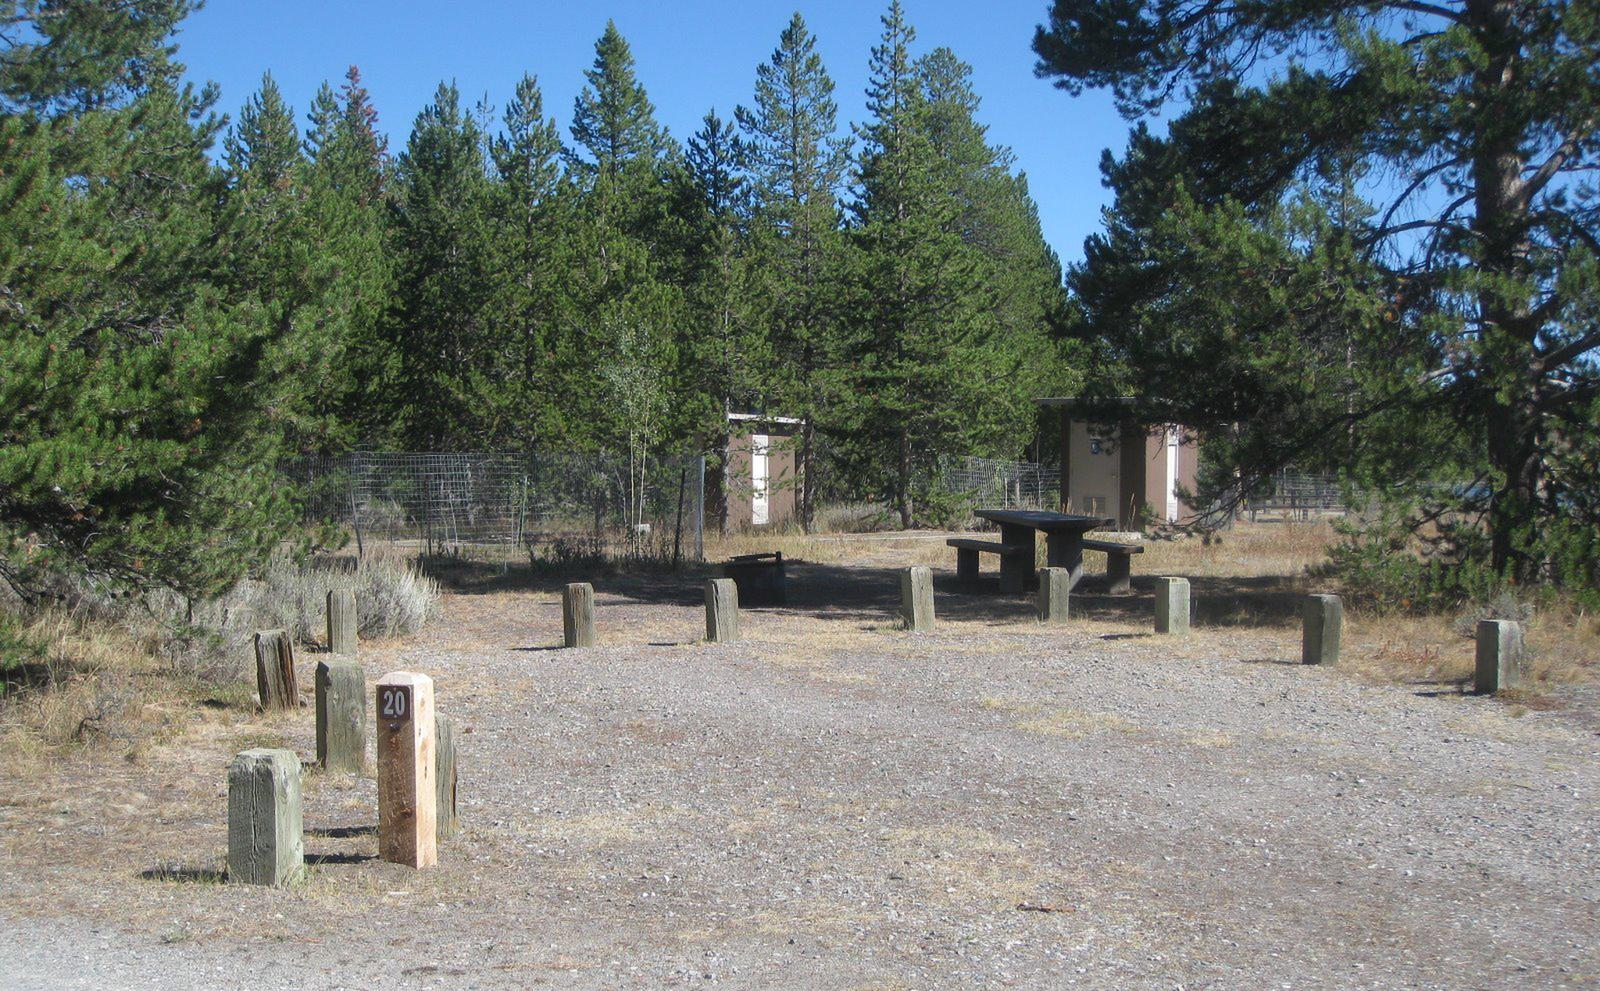 Site 20, campsite surrounded by pine trees, picnic table & fire ringSite 20